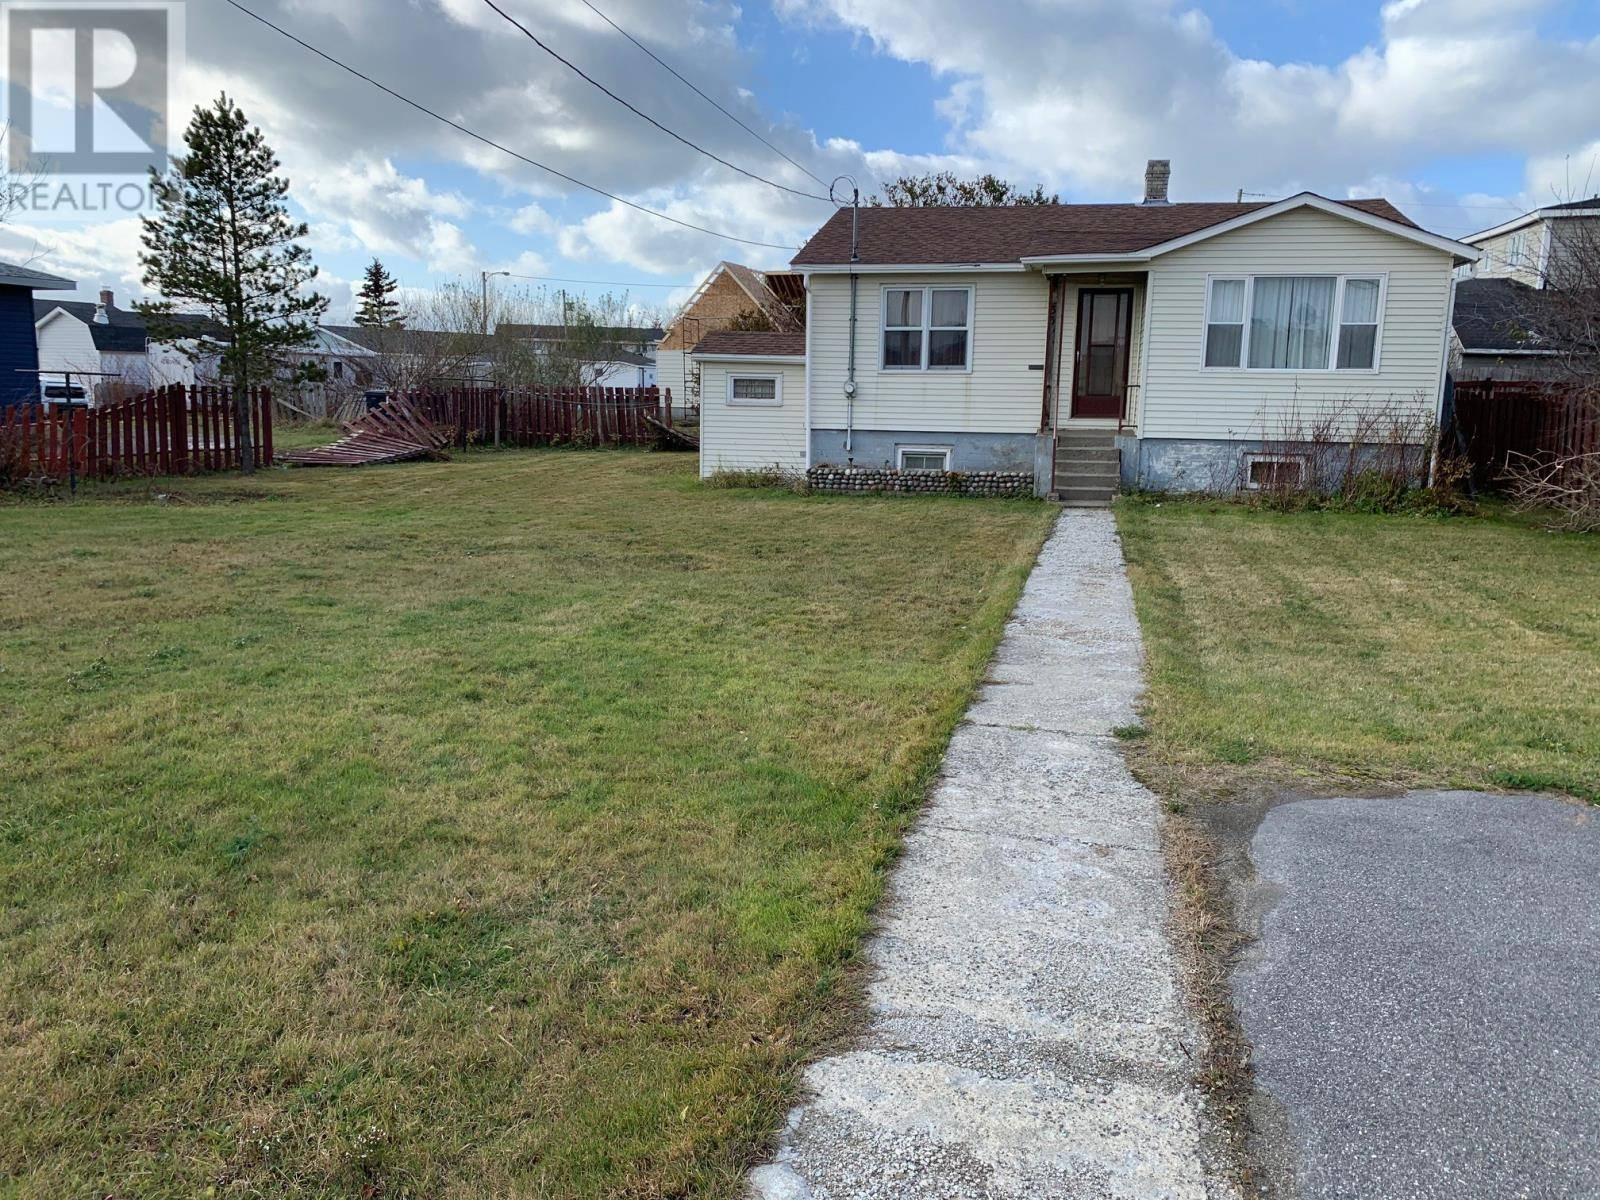 House for sale at 65 Queen St Stephenville Newfoundland - MLS: 1200137